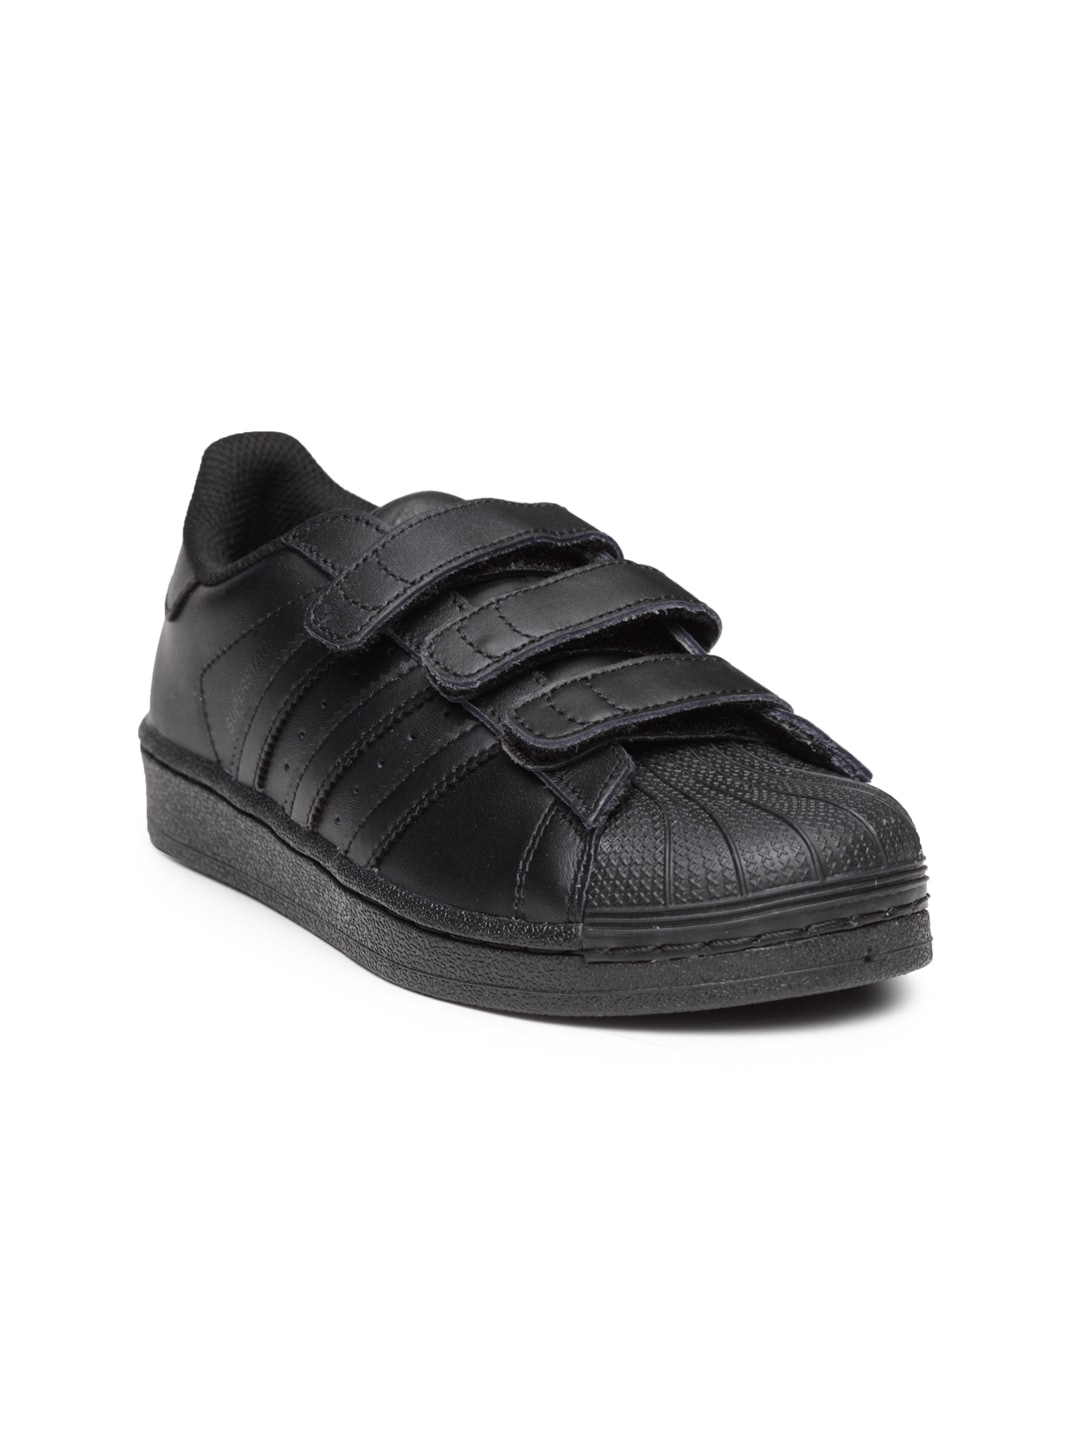 quality design 9d0d0 373e0 Adidas Originals Boys Girls Shoes - Buy Adidas Originals Boys Girls Shoes  online in India